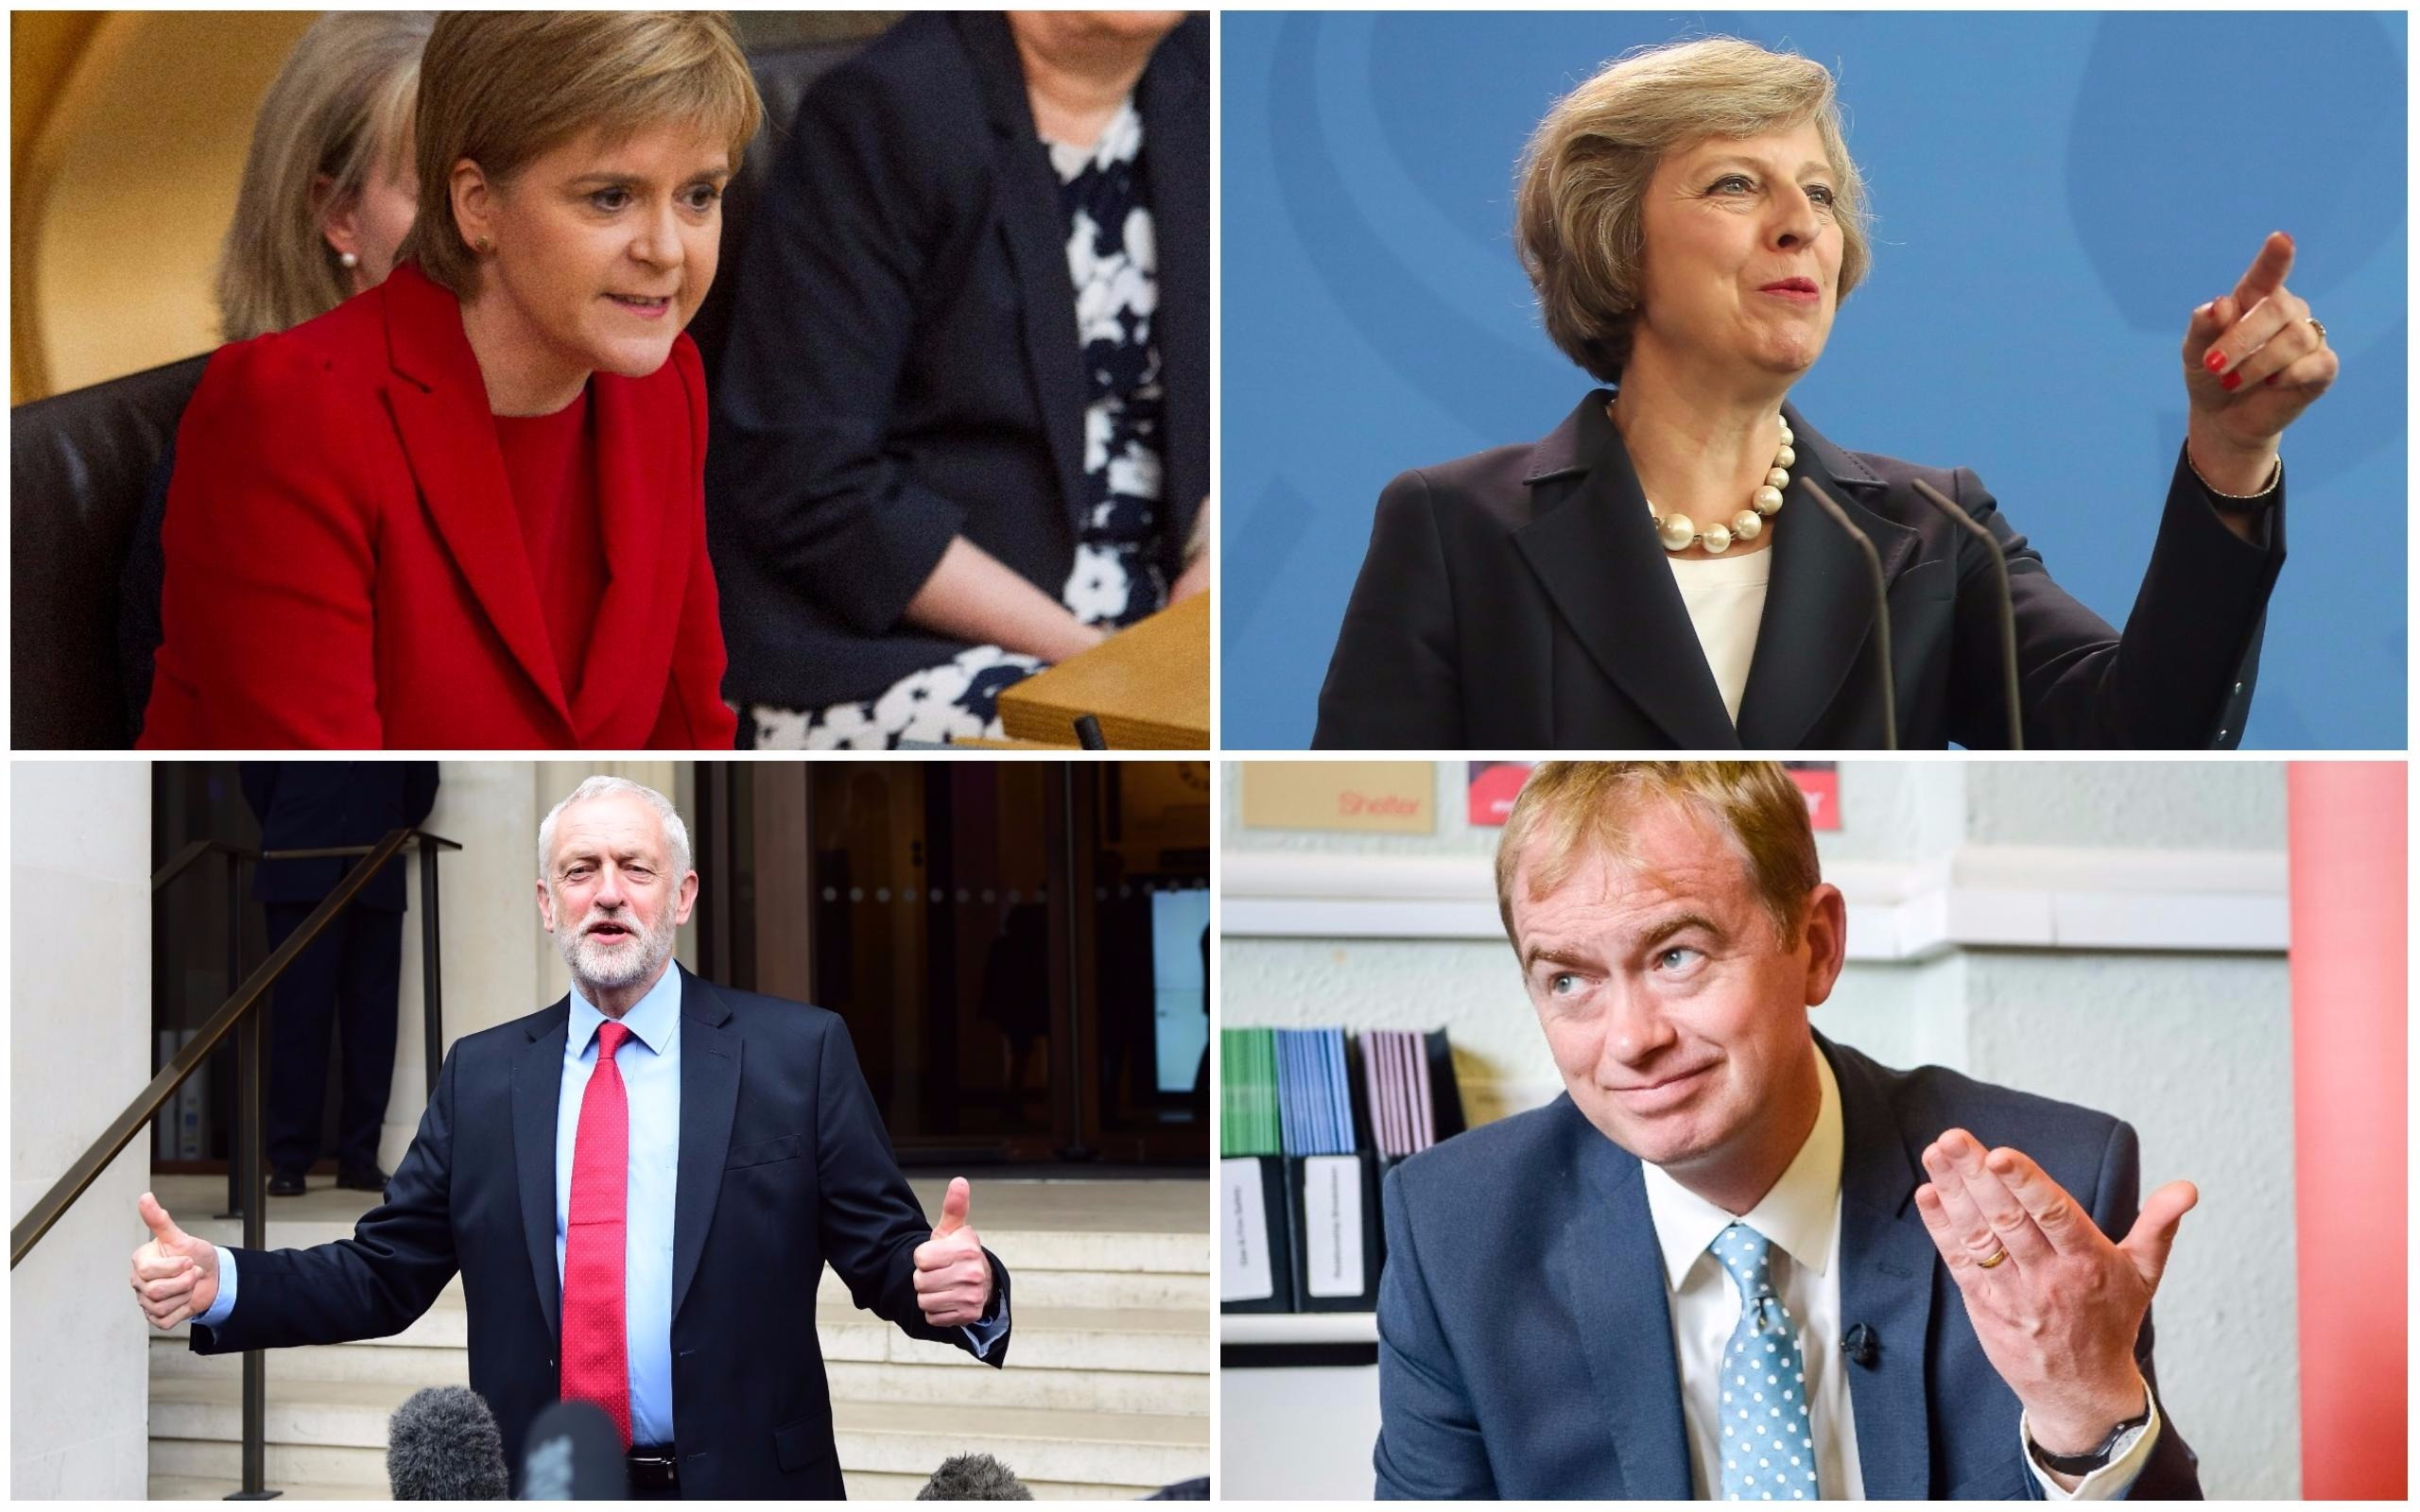 Theresa May (Adam Berry/Getty Images), Nicola Sturgeon (SWNS), Labour leader Jeremy Corbyn (PA), Leader of the Liberal Democrats Tim Farron (PA)